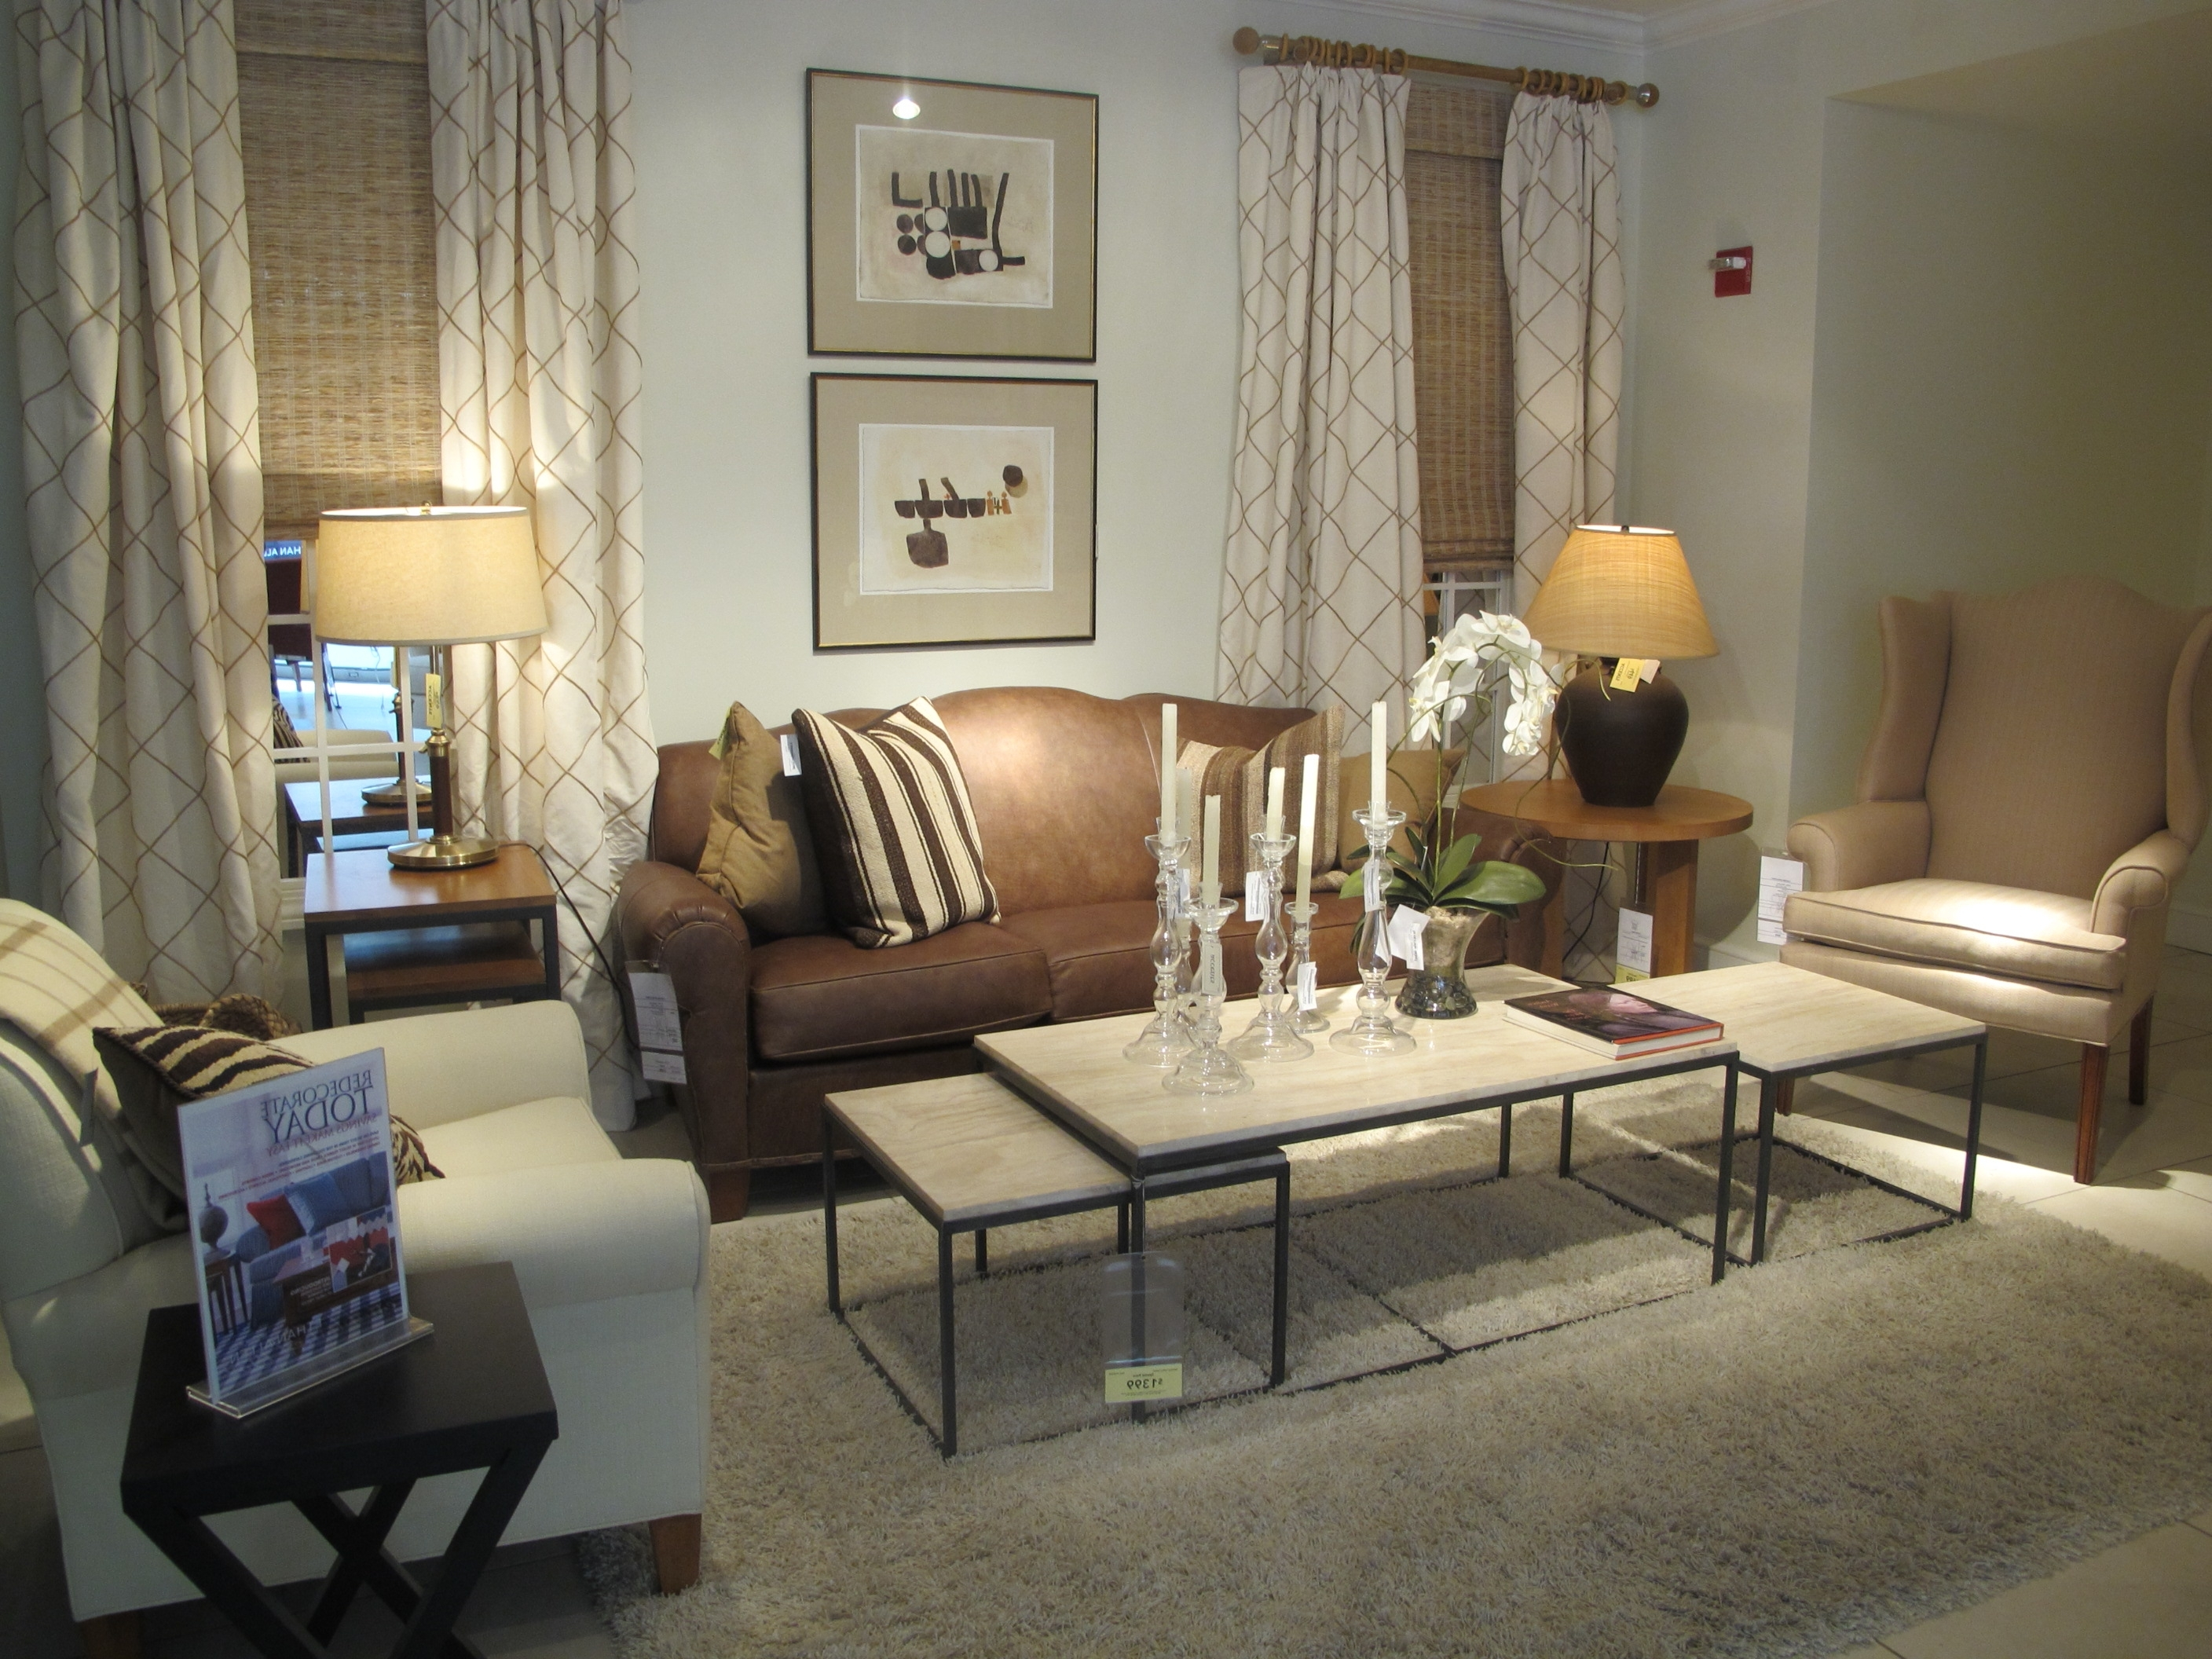 Latest Ethan Allen Sofas And Chairs Inside What's So Horrible About Ethan Allen Anyway? (View 6 of 20)